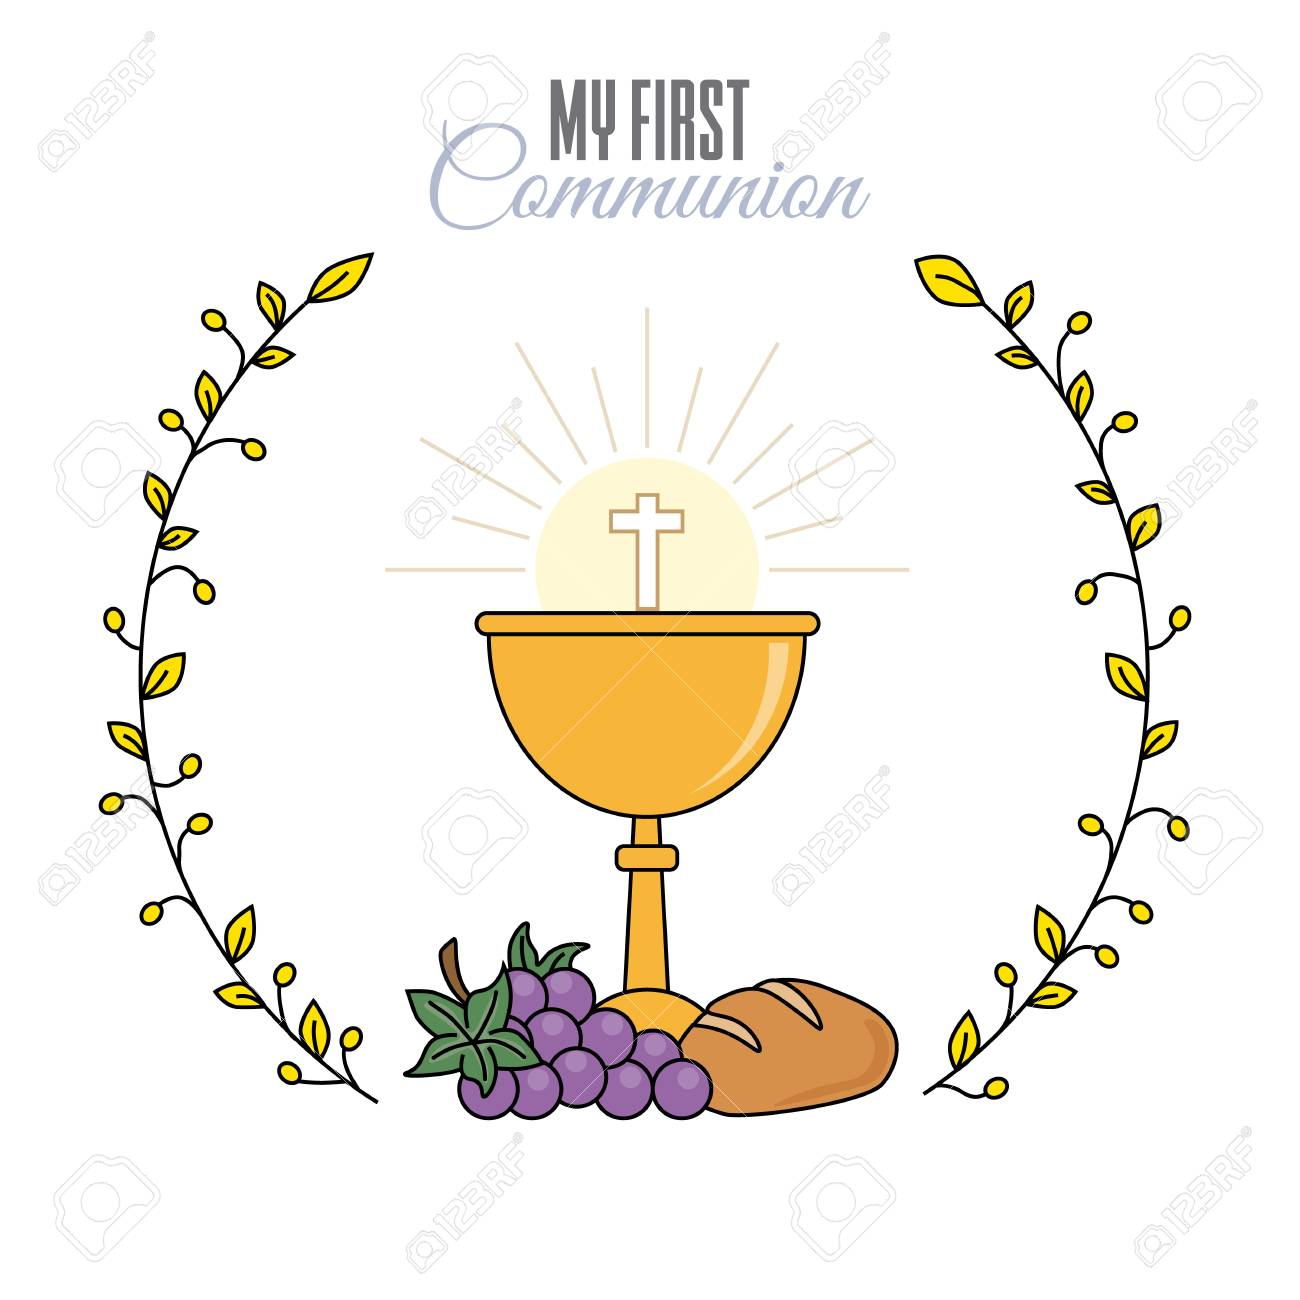 card my first communion invitation chalice with bread and grapes